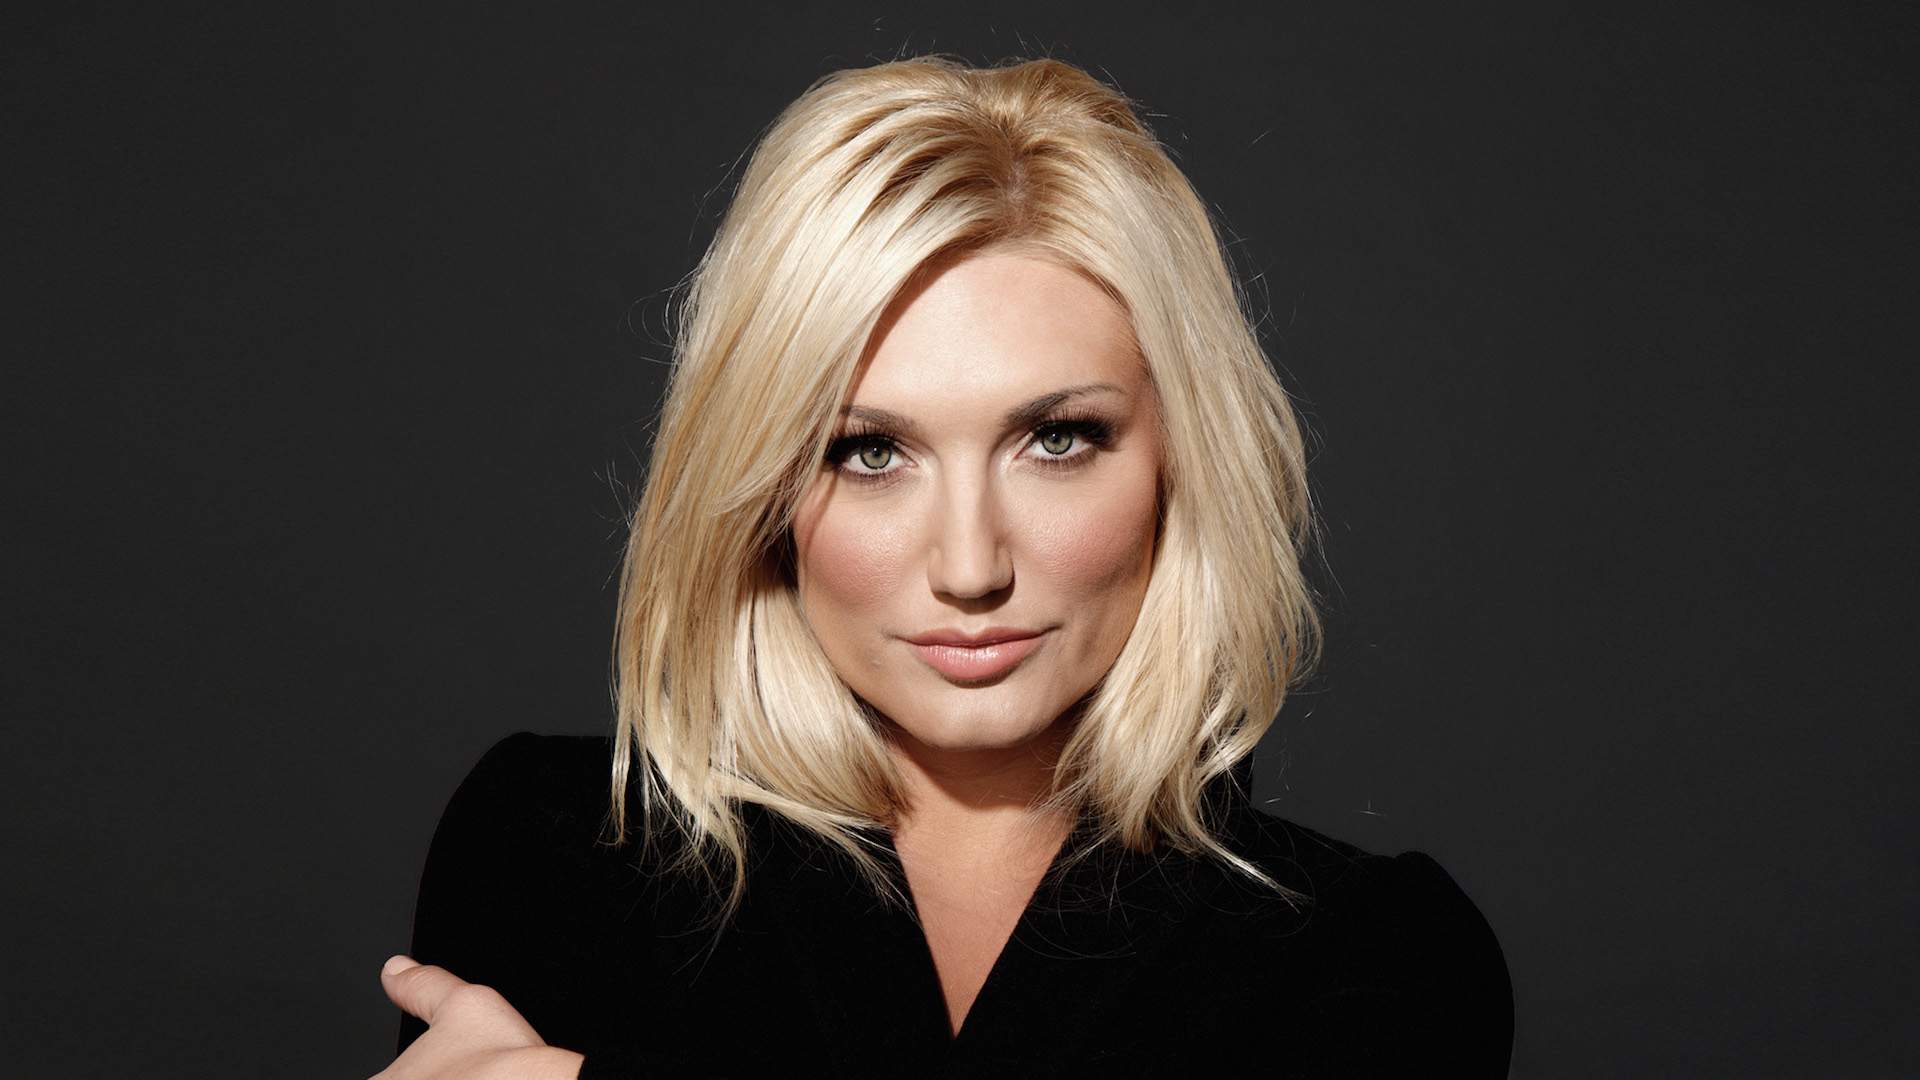 Brooke Hogan Official Website